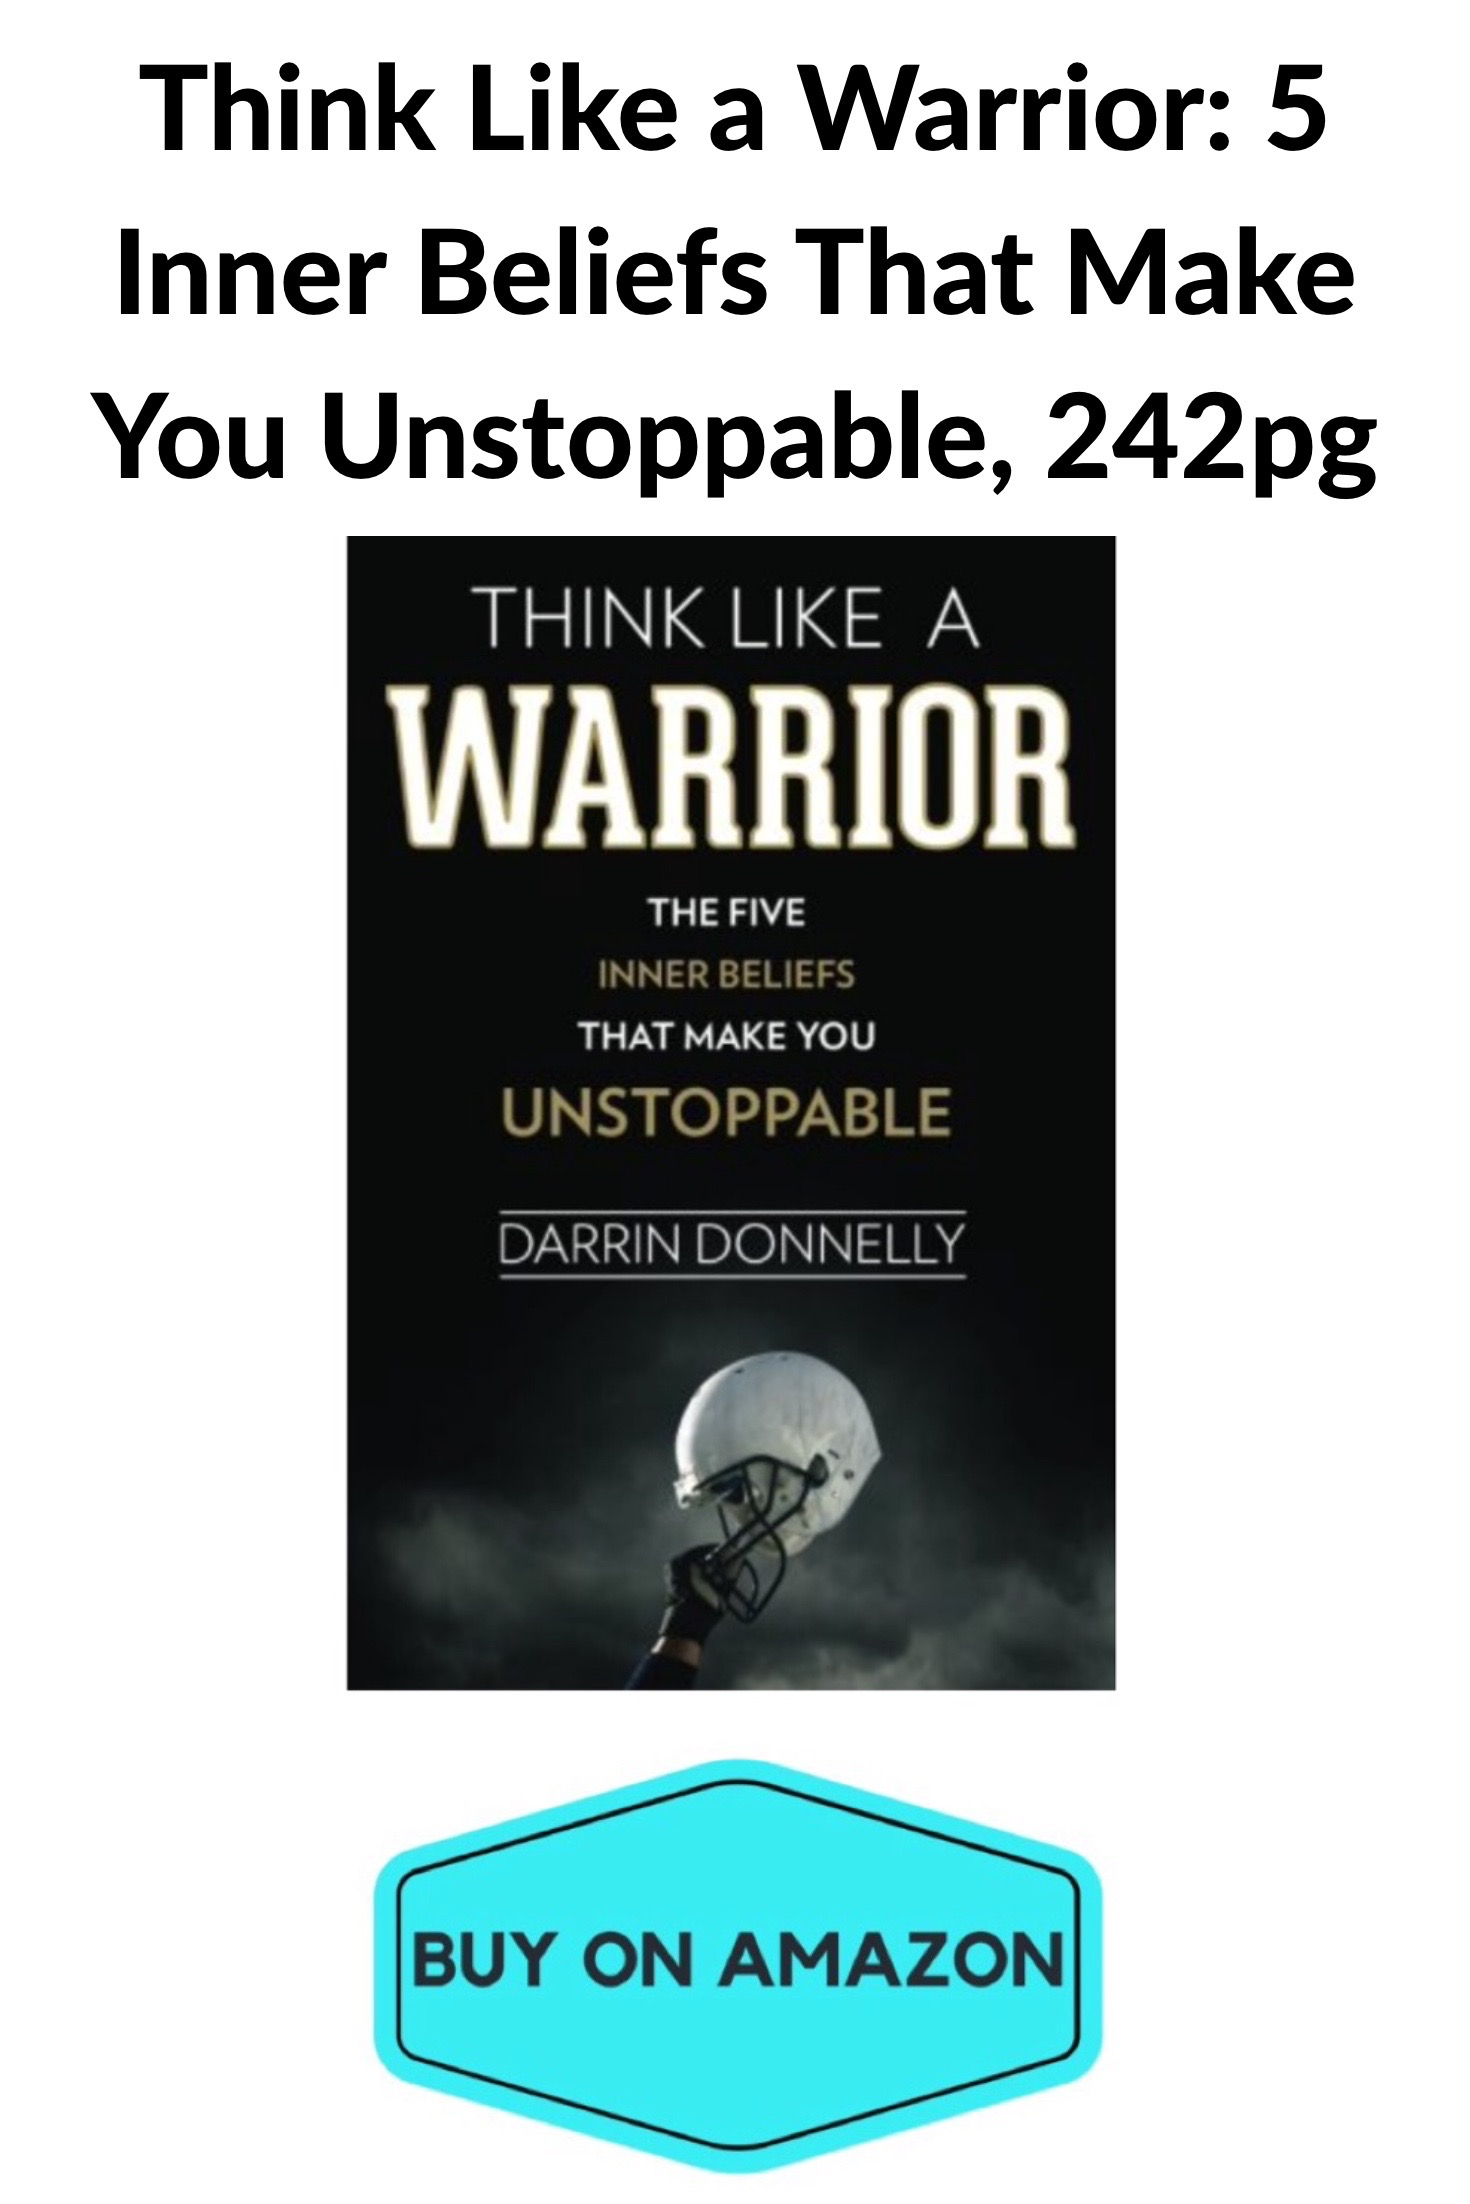 Think Like A Warrior: Five Inner Beliefs That Make You Unstoppable